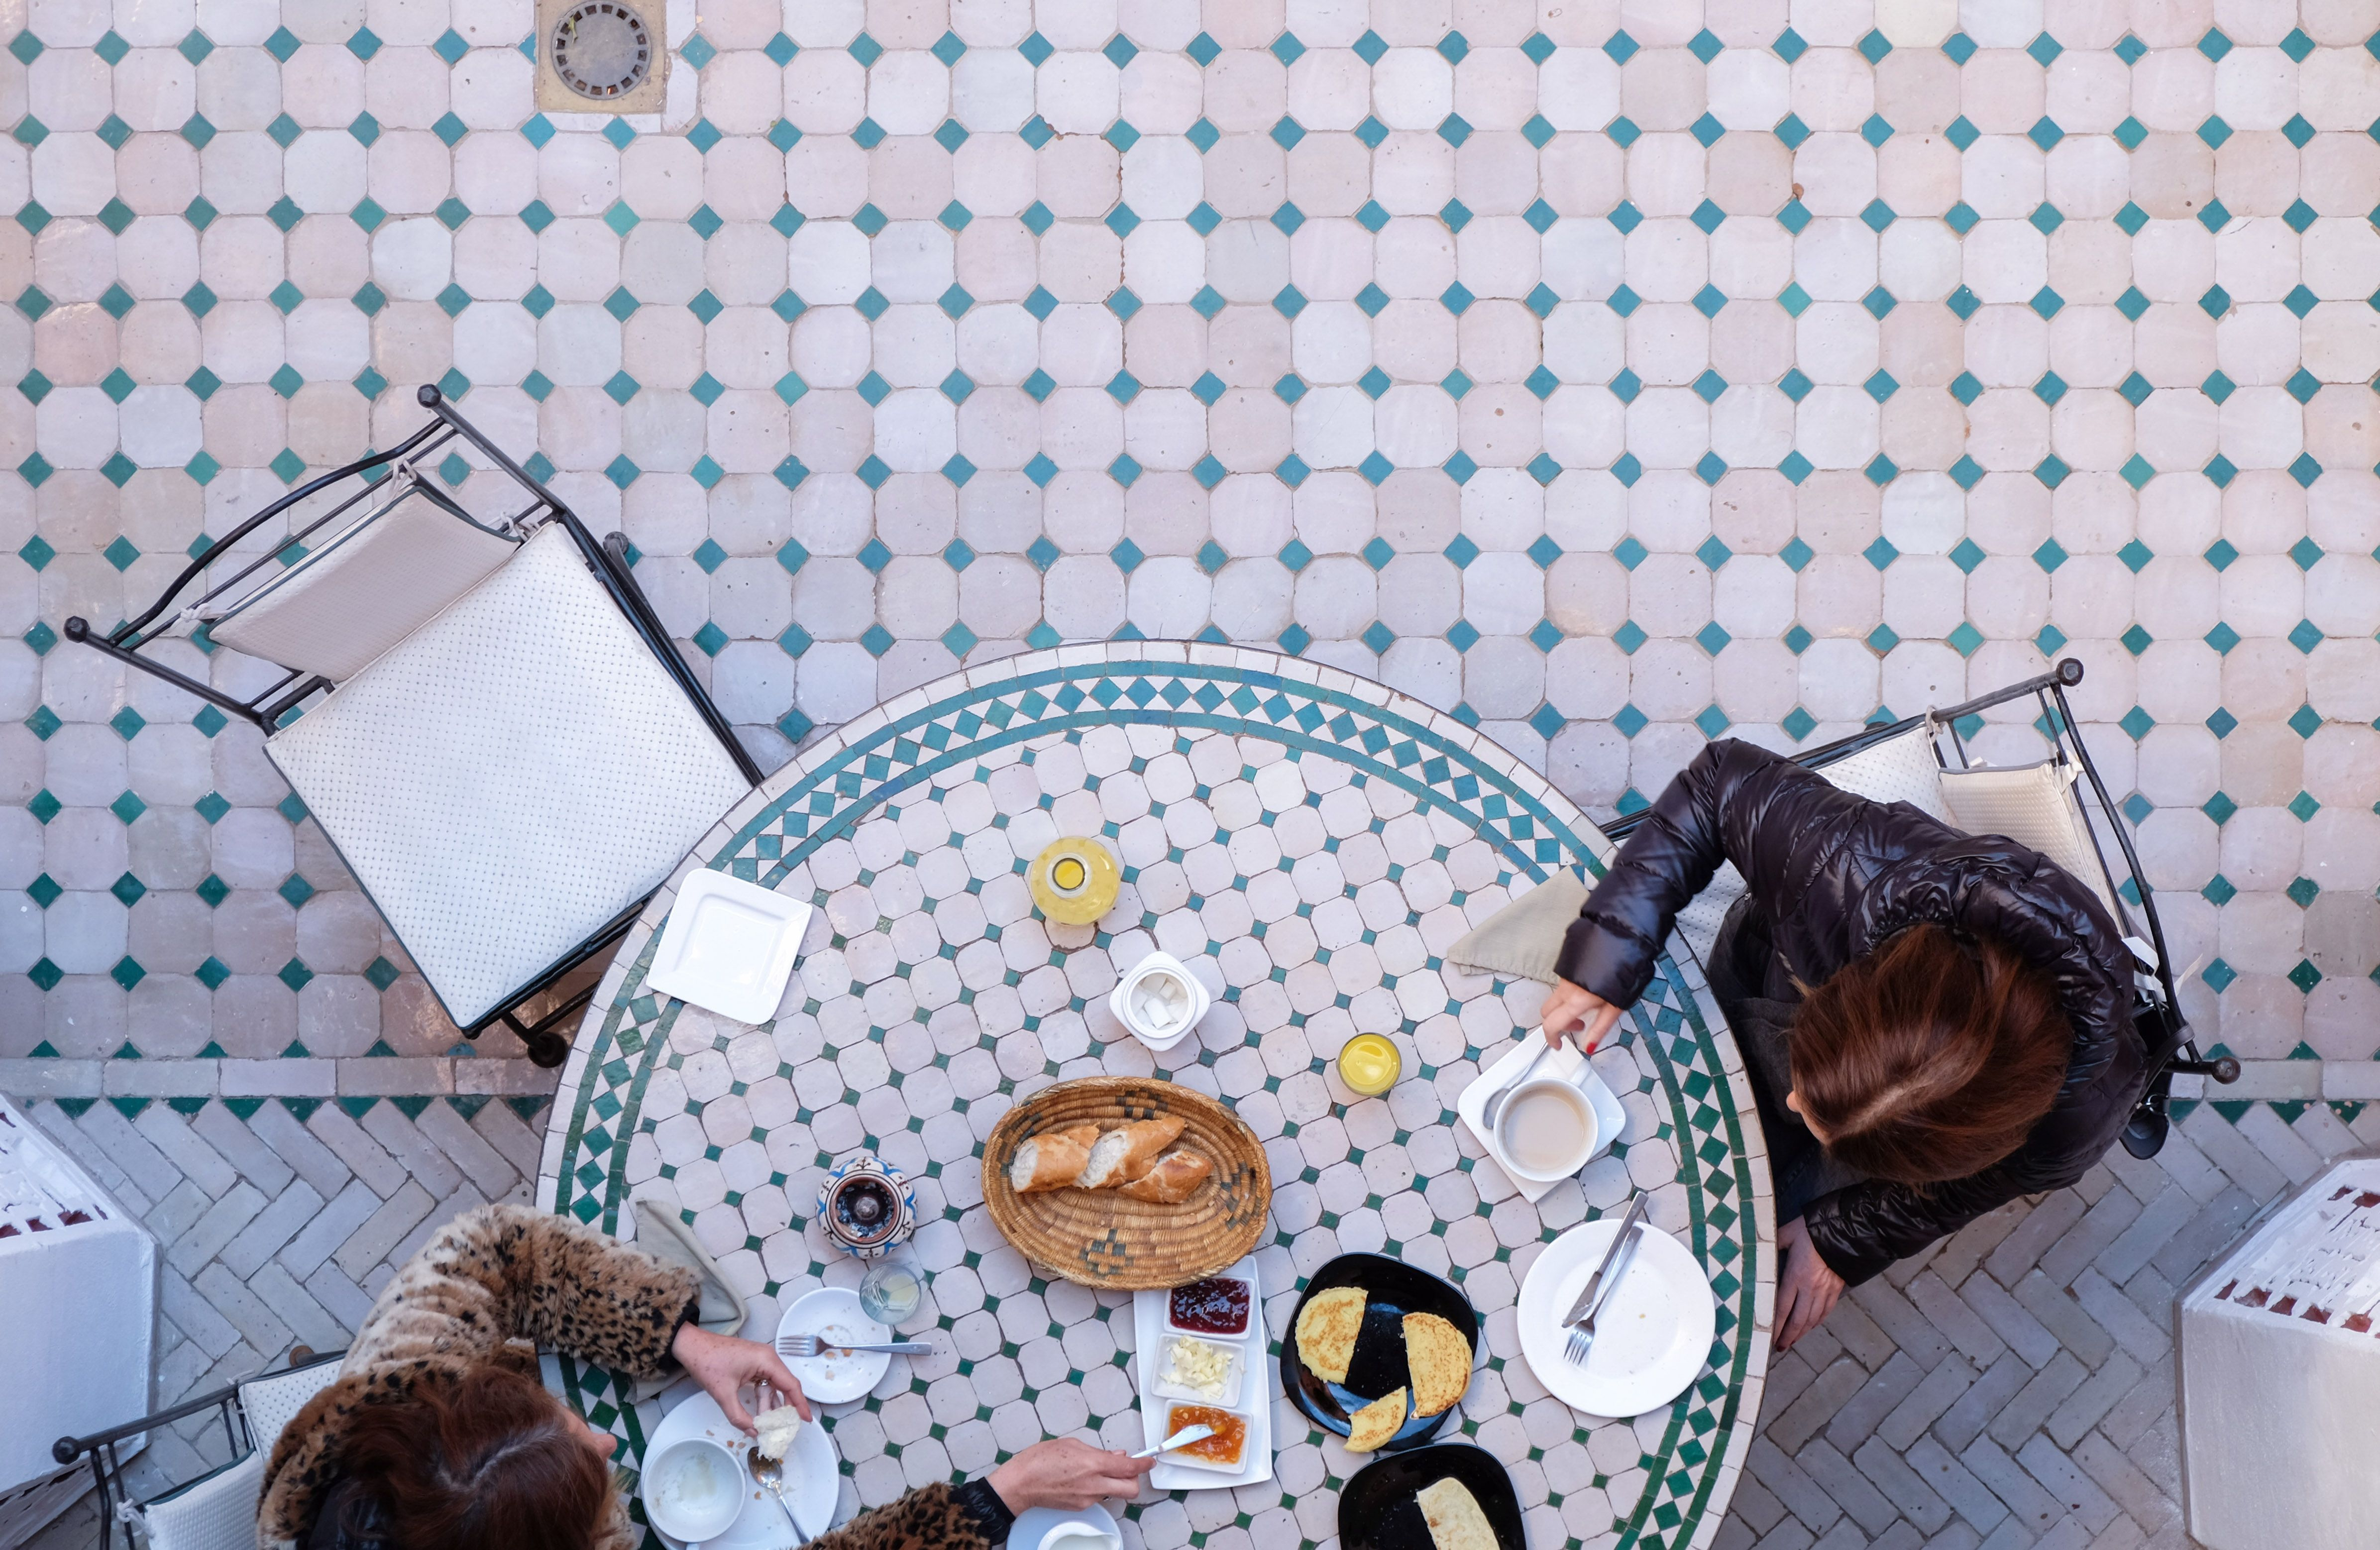 Morocco is known for its zellige, the handmade tiles that form interesting and colorful patterns. In this photo, taken in Marrakesh, women take a snack break on a floor and table featuring the art form.